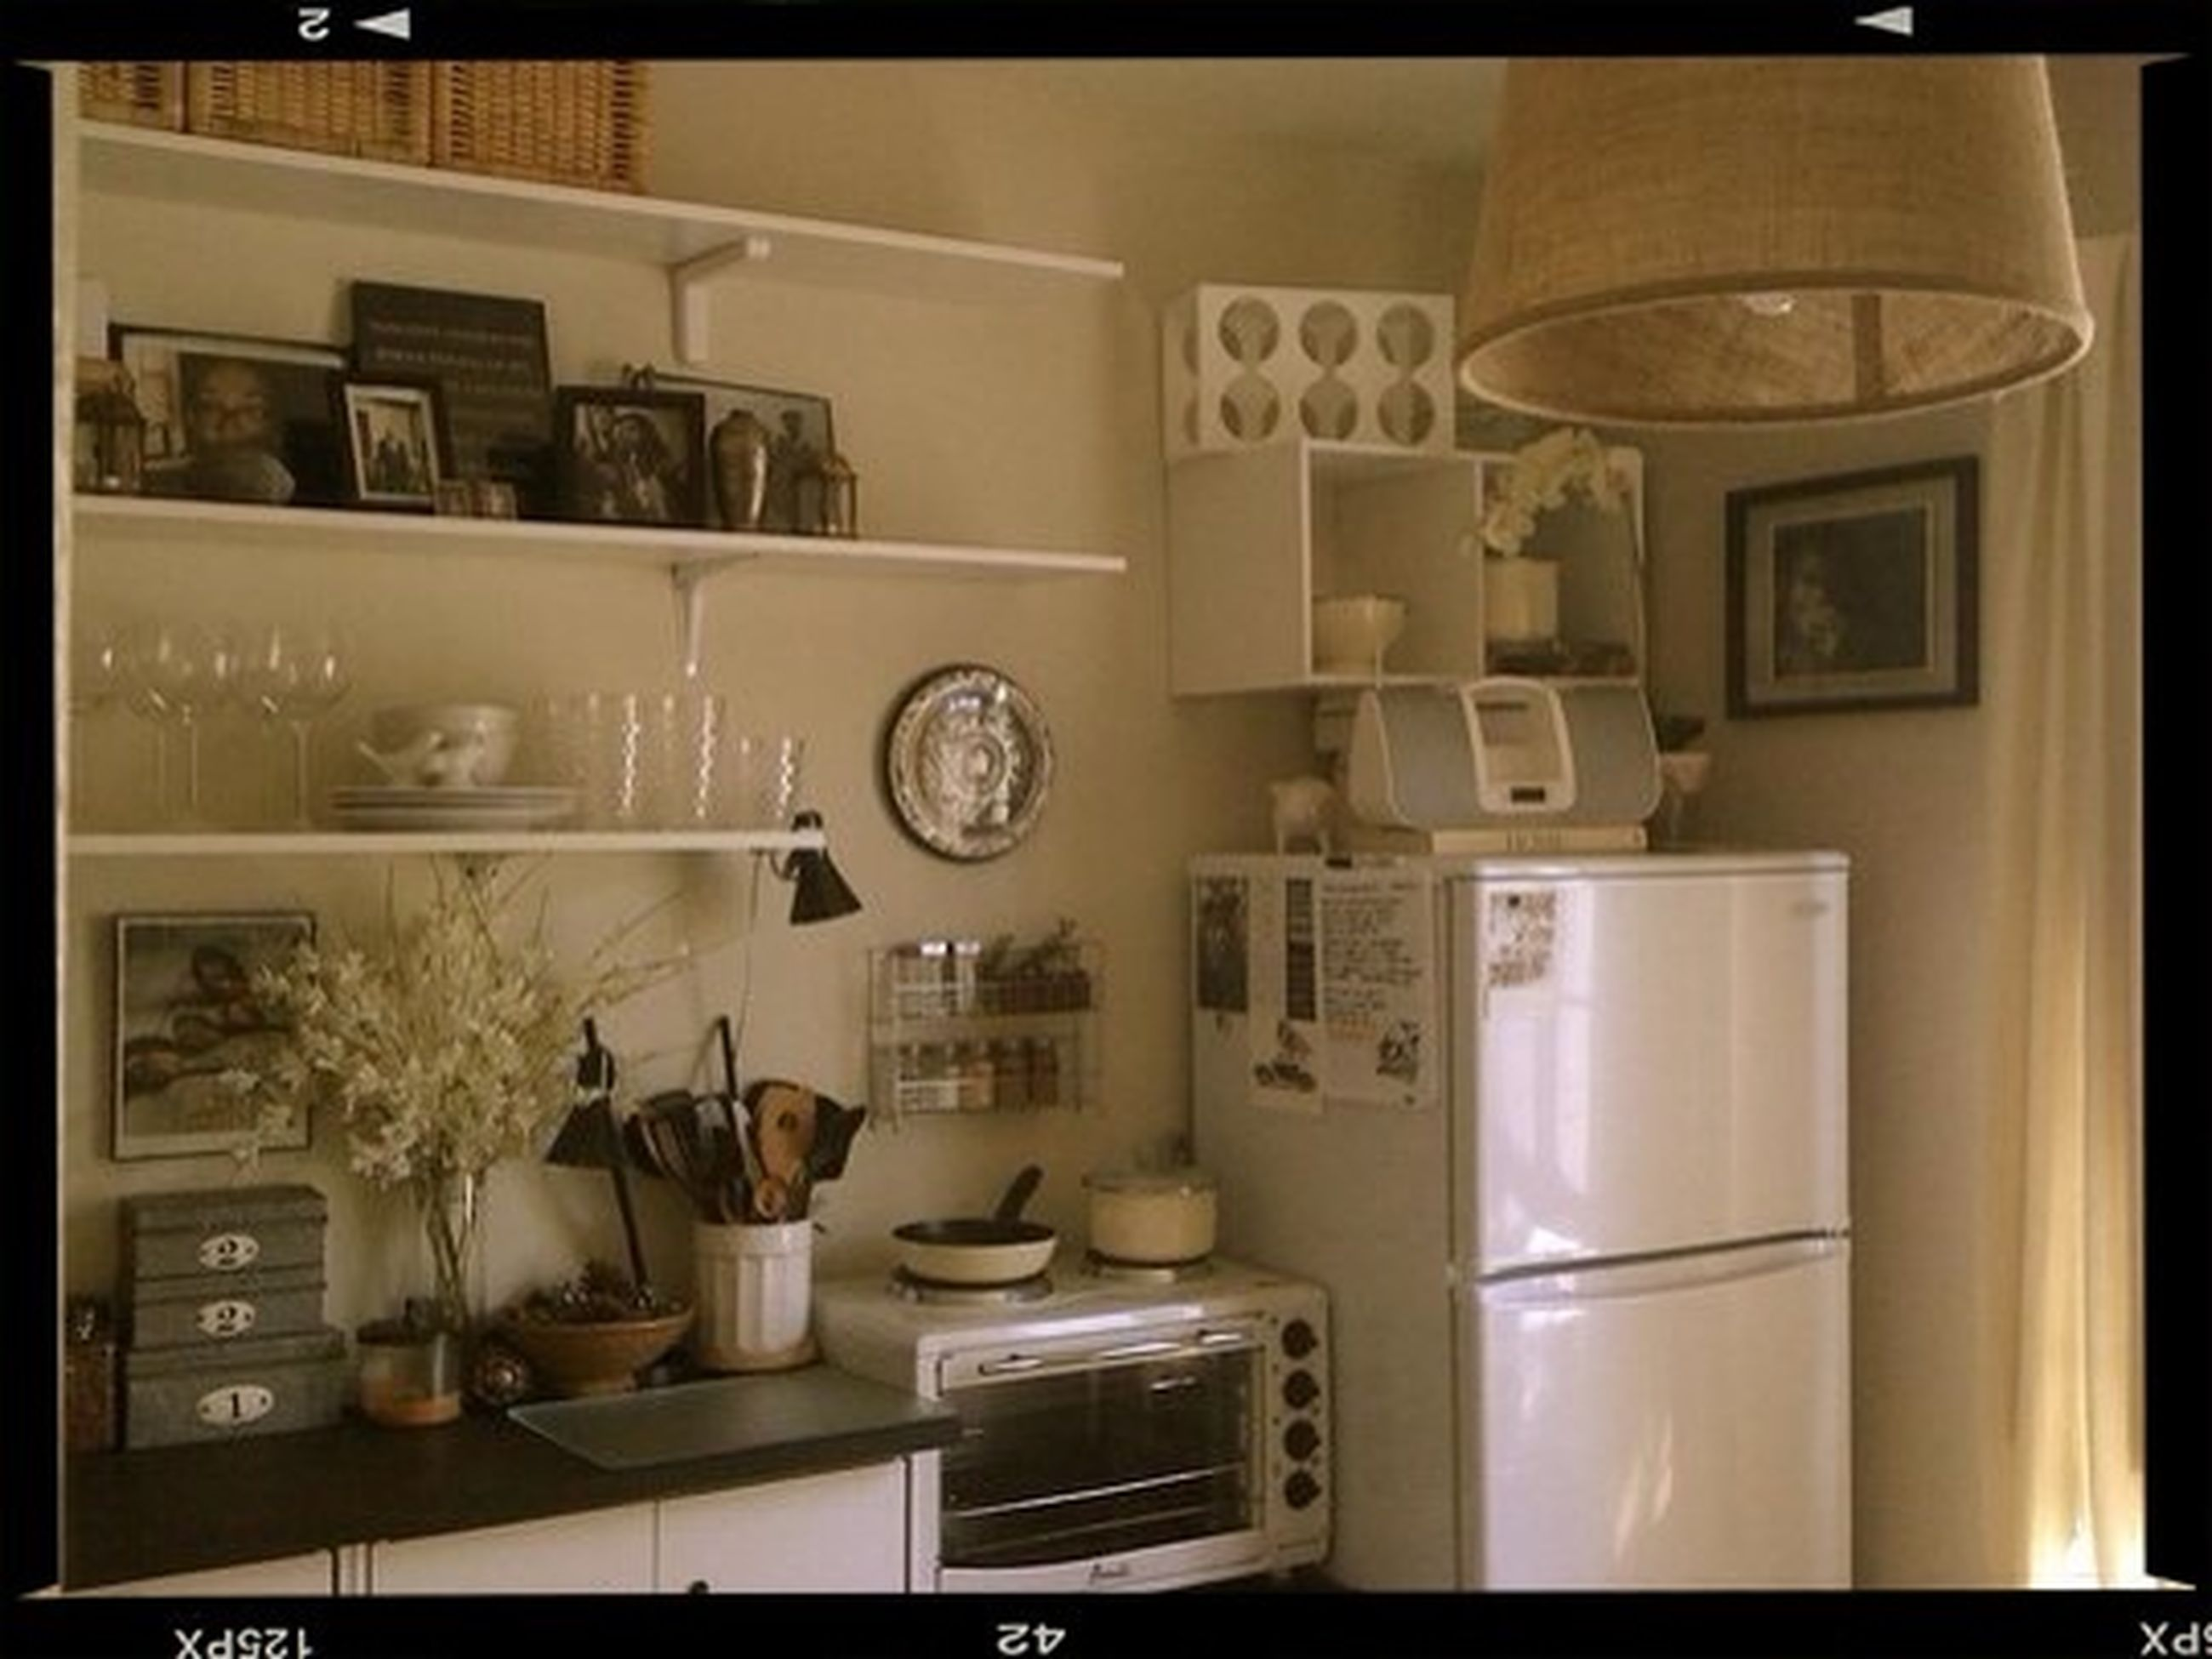 indoors, shelf, transfer print, table, still life, domestic kitchen, technology, home interior, auto post production filter, kitchen, communication, food and drink, no people, domestic room, variation, sink, close-up, large group of objects, bottle, kitchen utensil